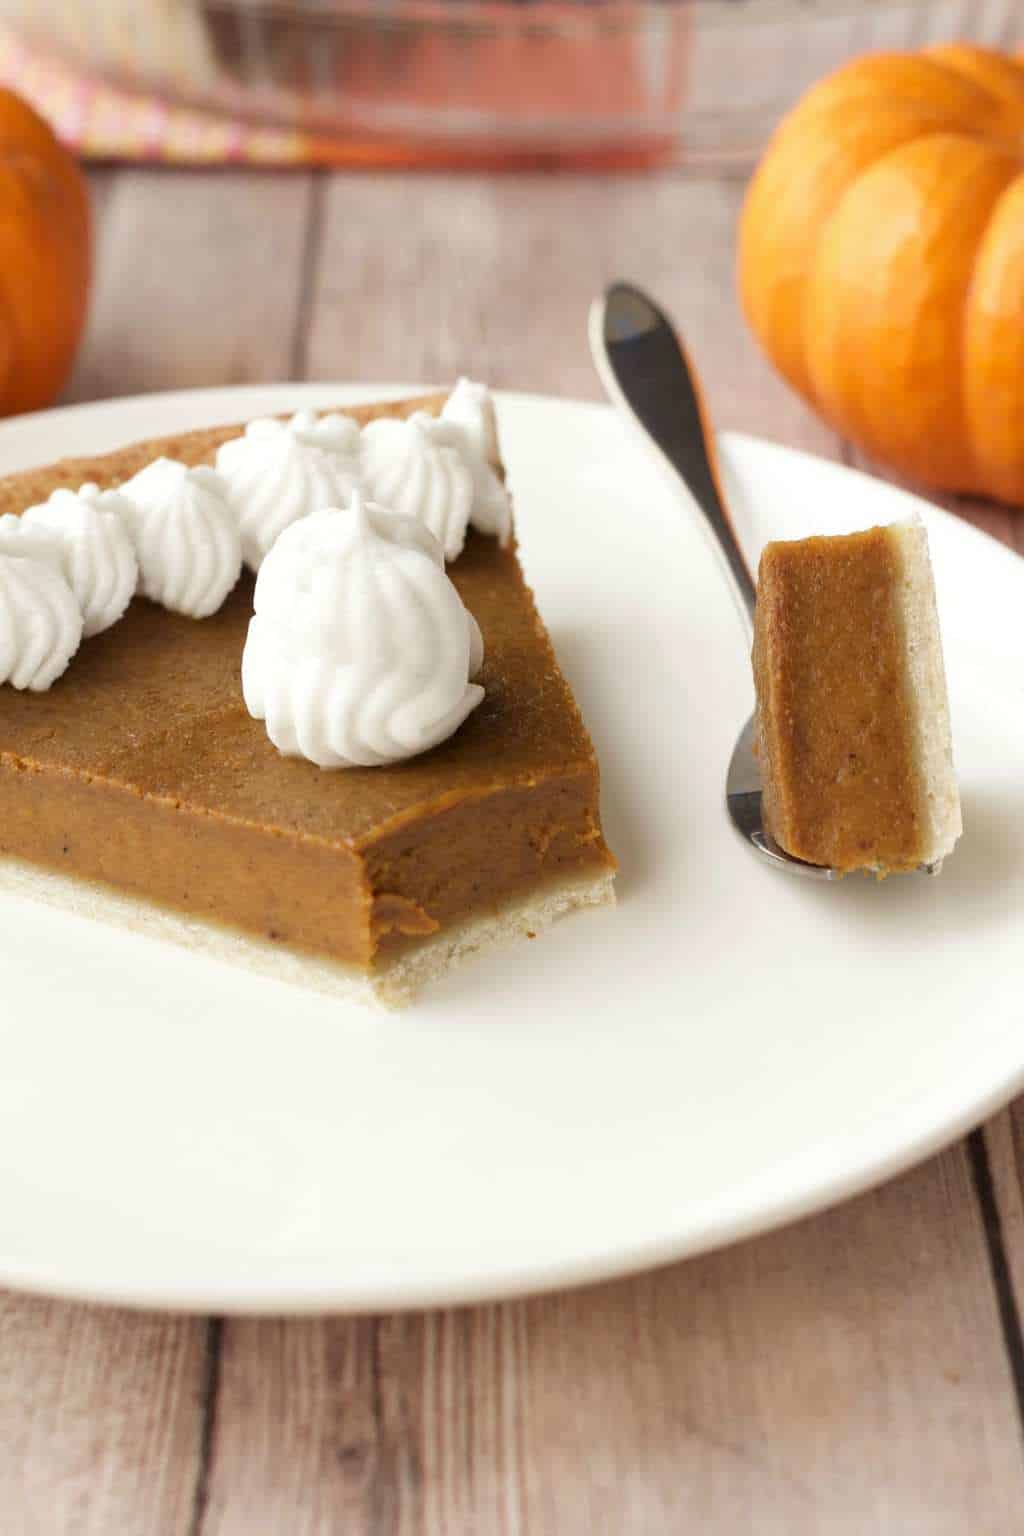 A slice of vegan pumpkin pie on a white plate with a cake fork.